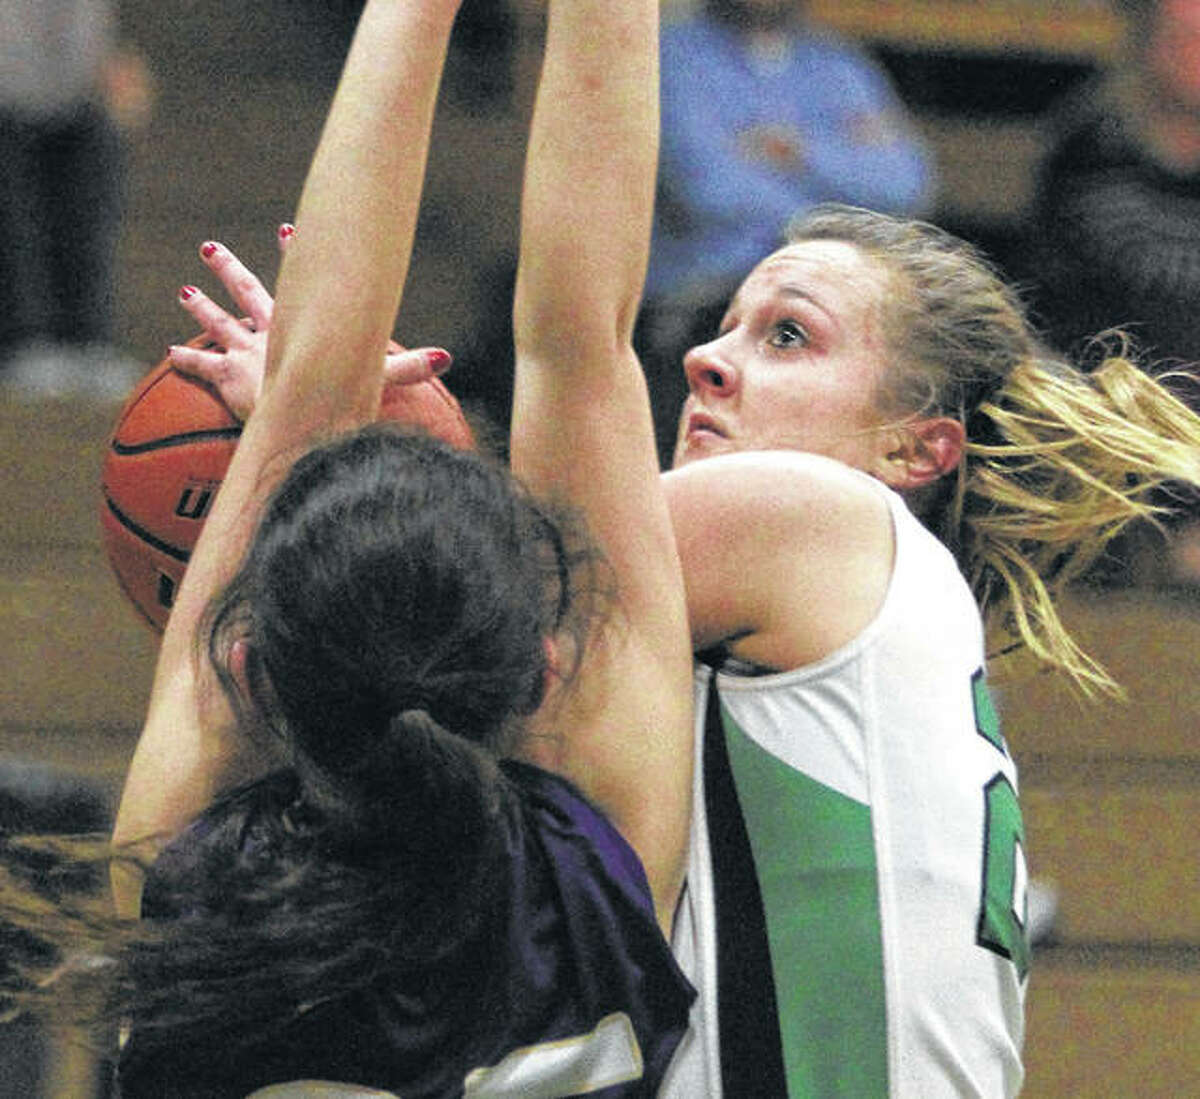 Carrollton junior Hannah Krumwiede (right) shoots over a Jacksonville Routt defender during Thursday's WIVC girls basketball game in Carrollton. Krumwiede scored her 1,000 career point in the Hawks' loss.